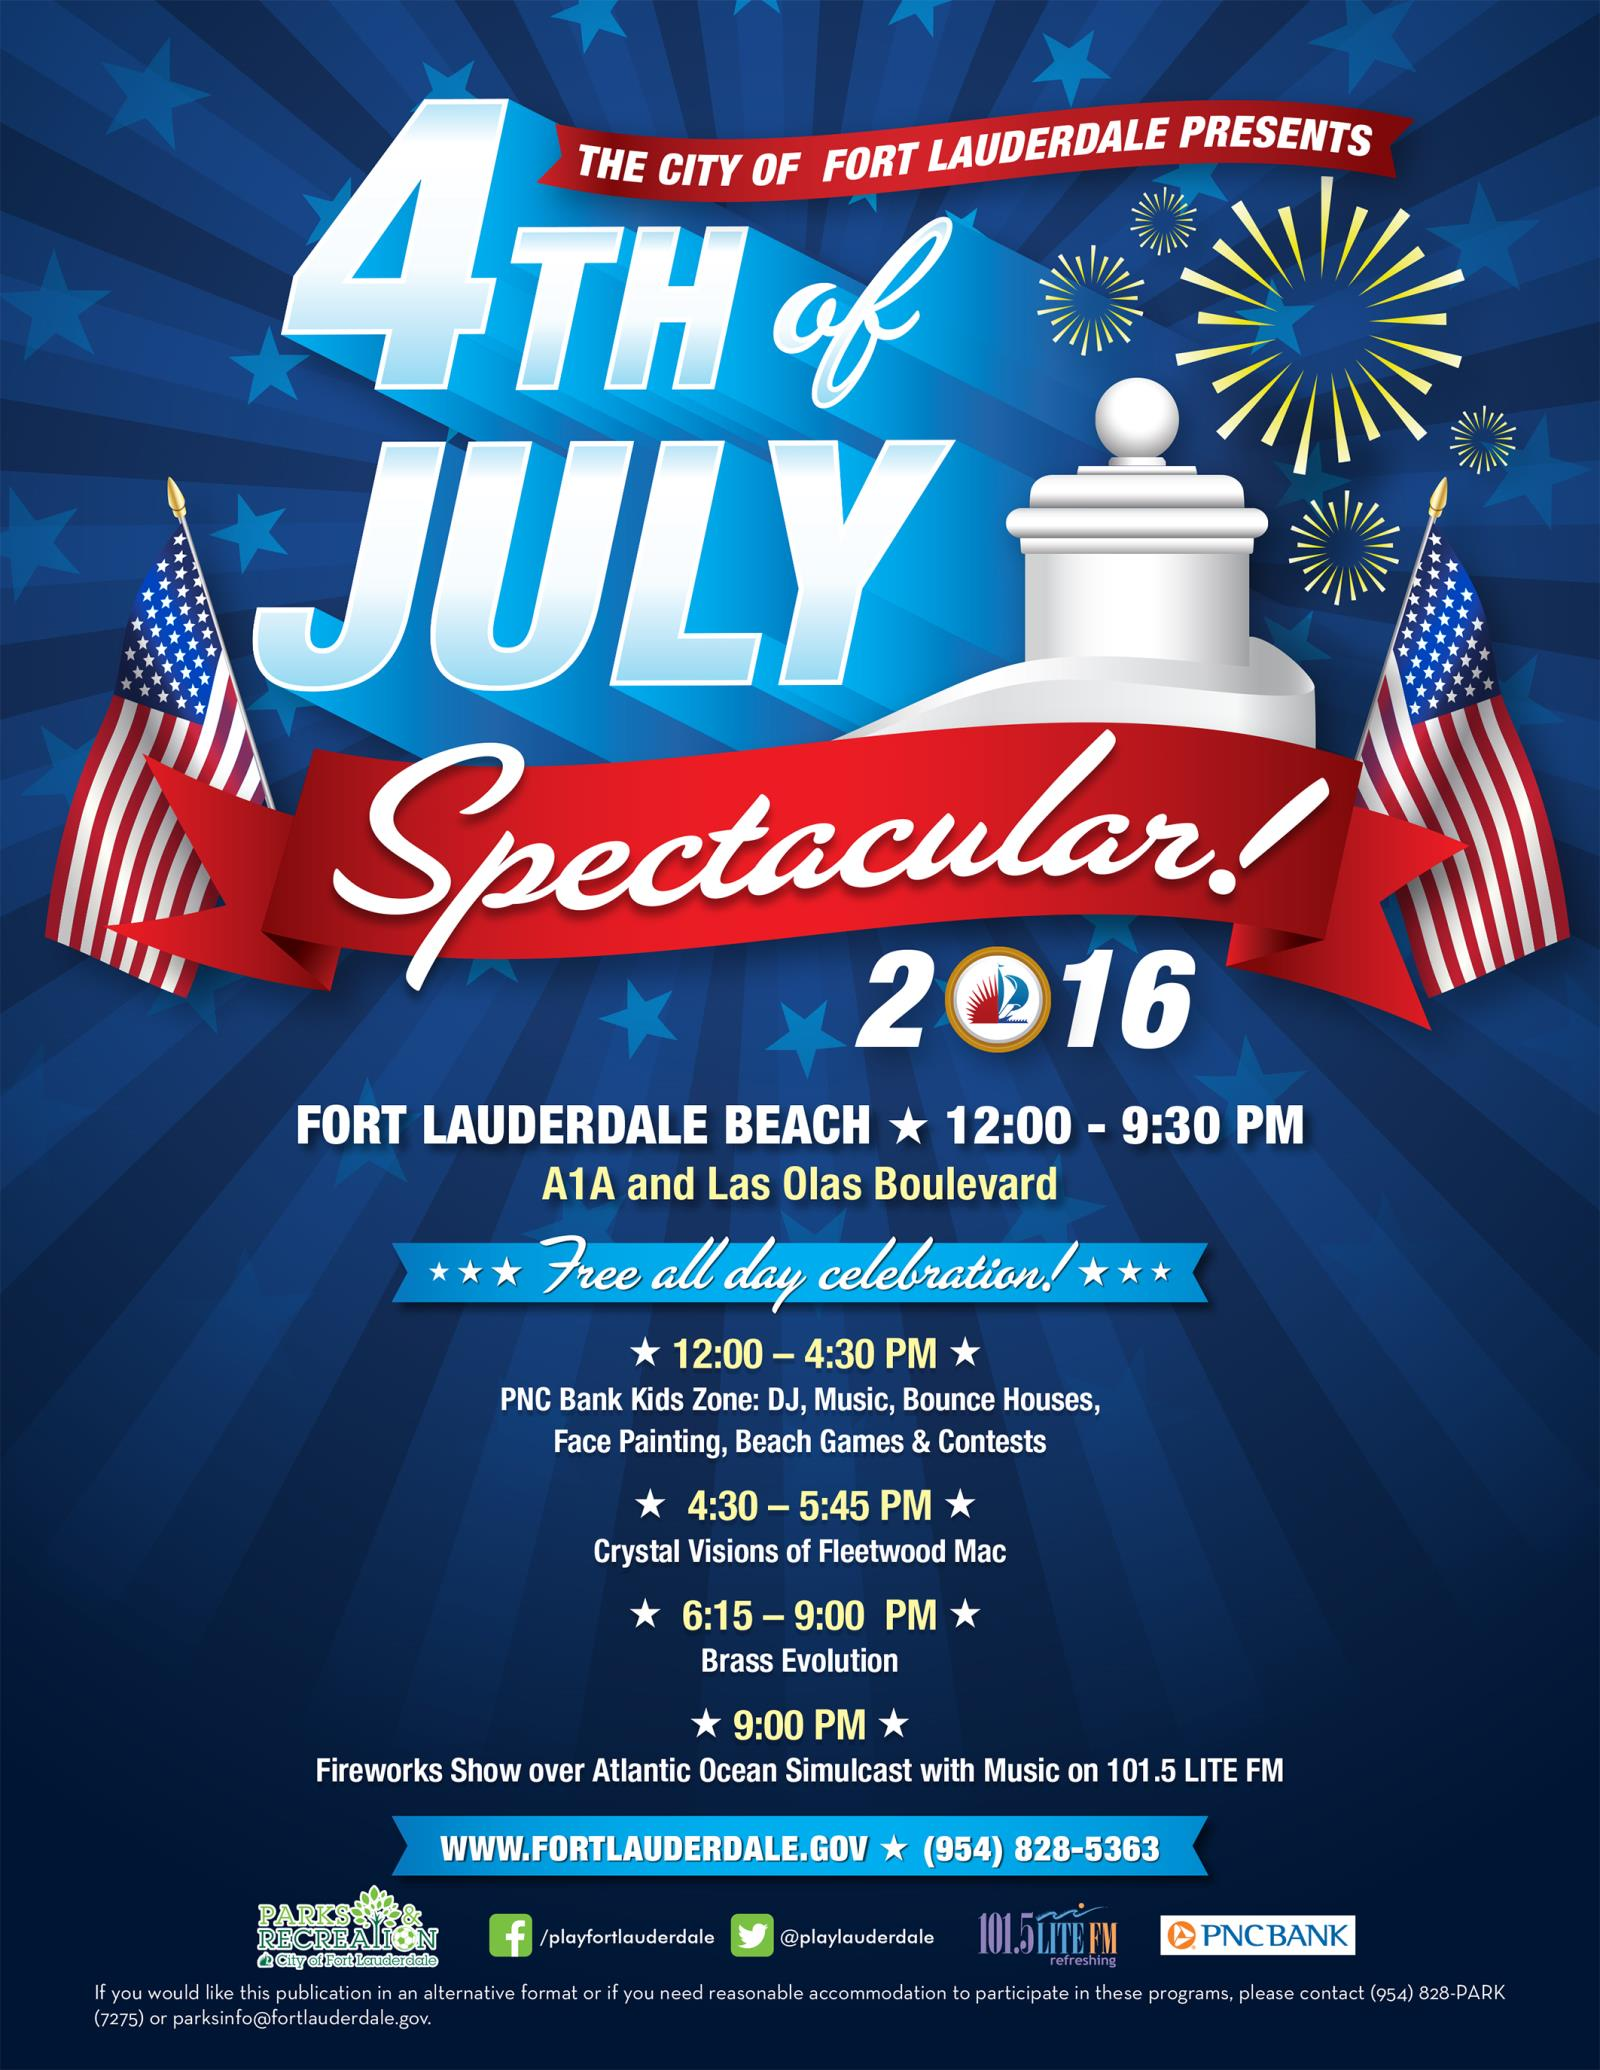 4th of july spectacular on fort lauderdale beach south florida finds